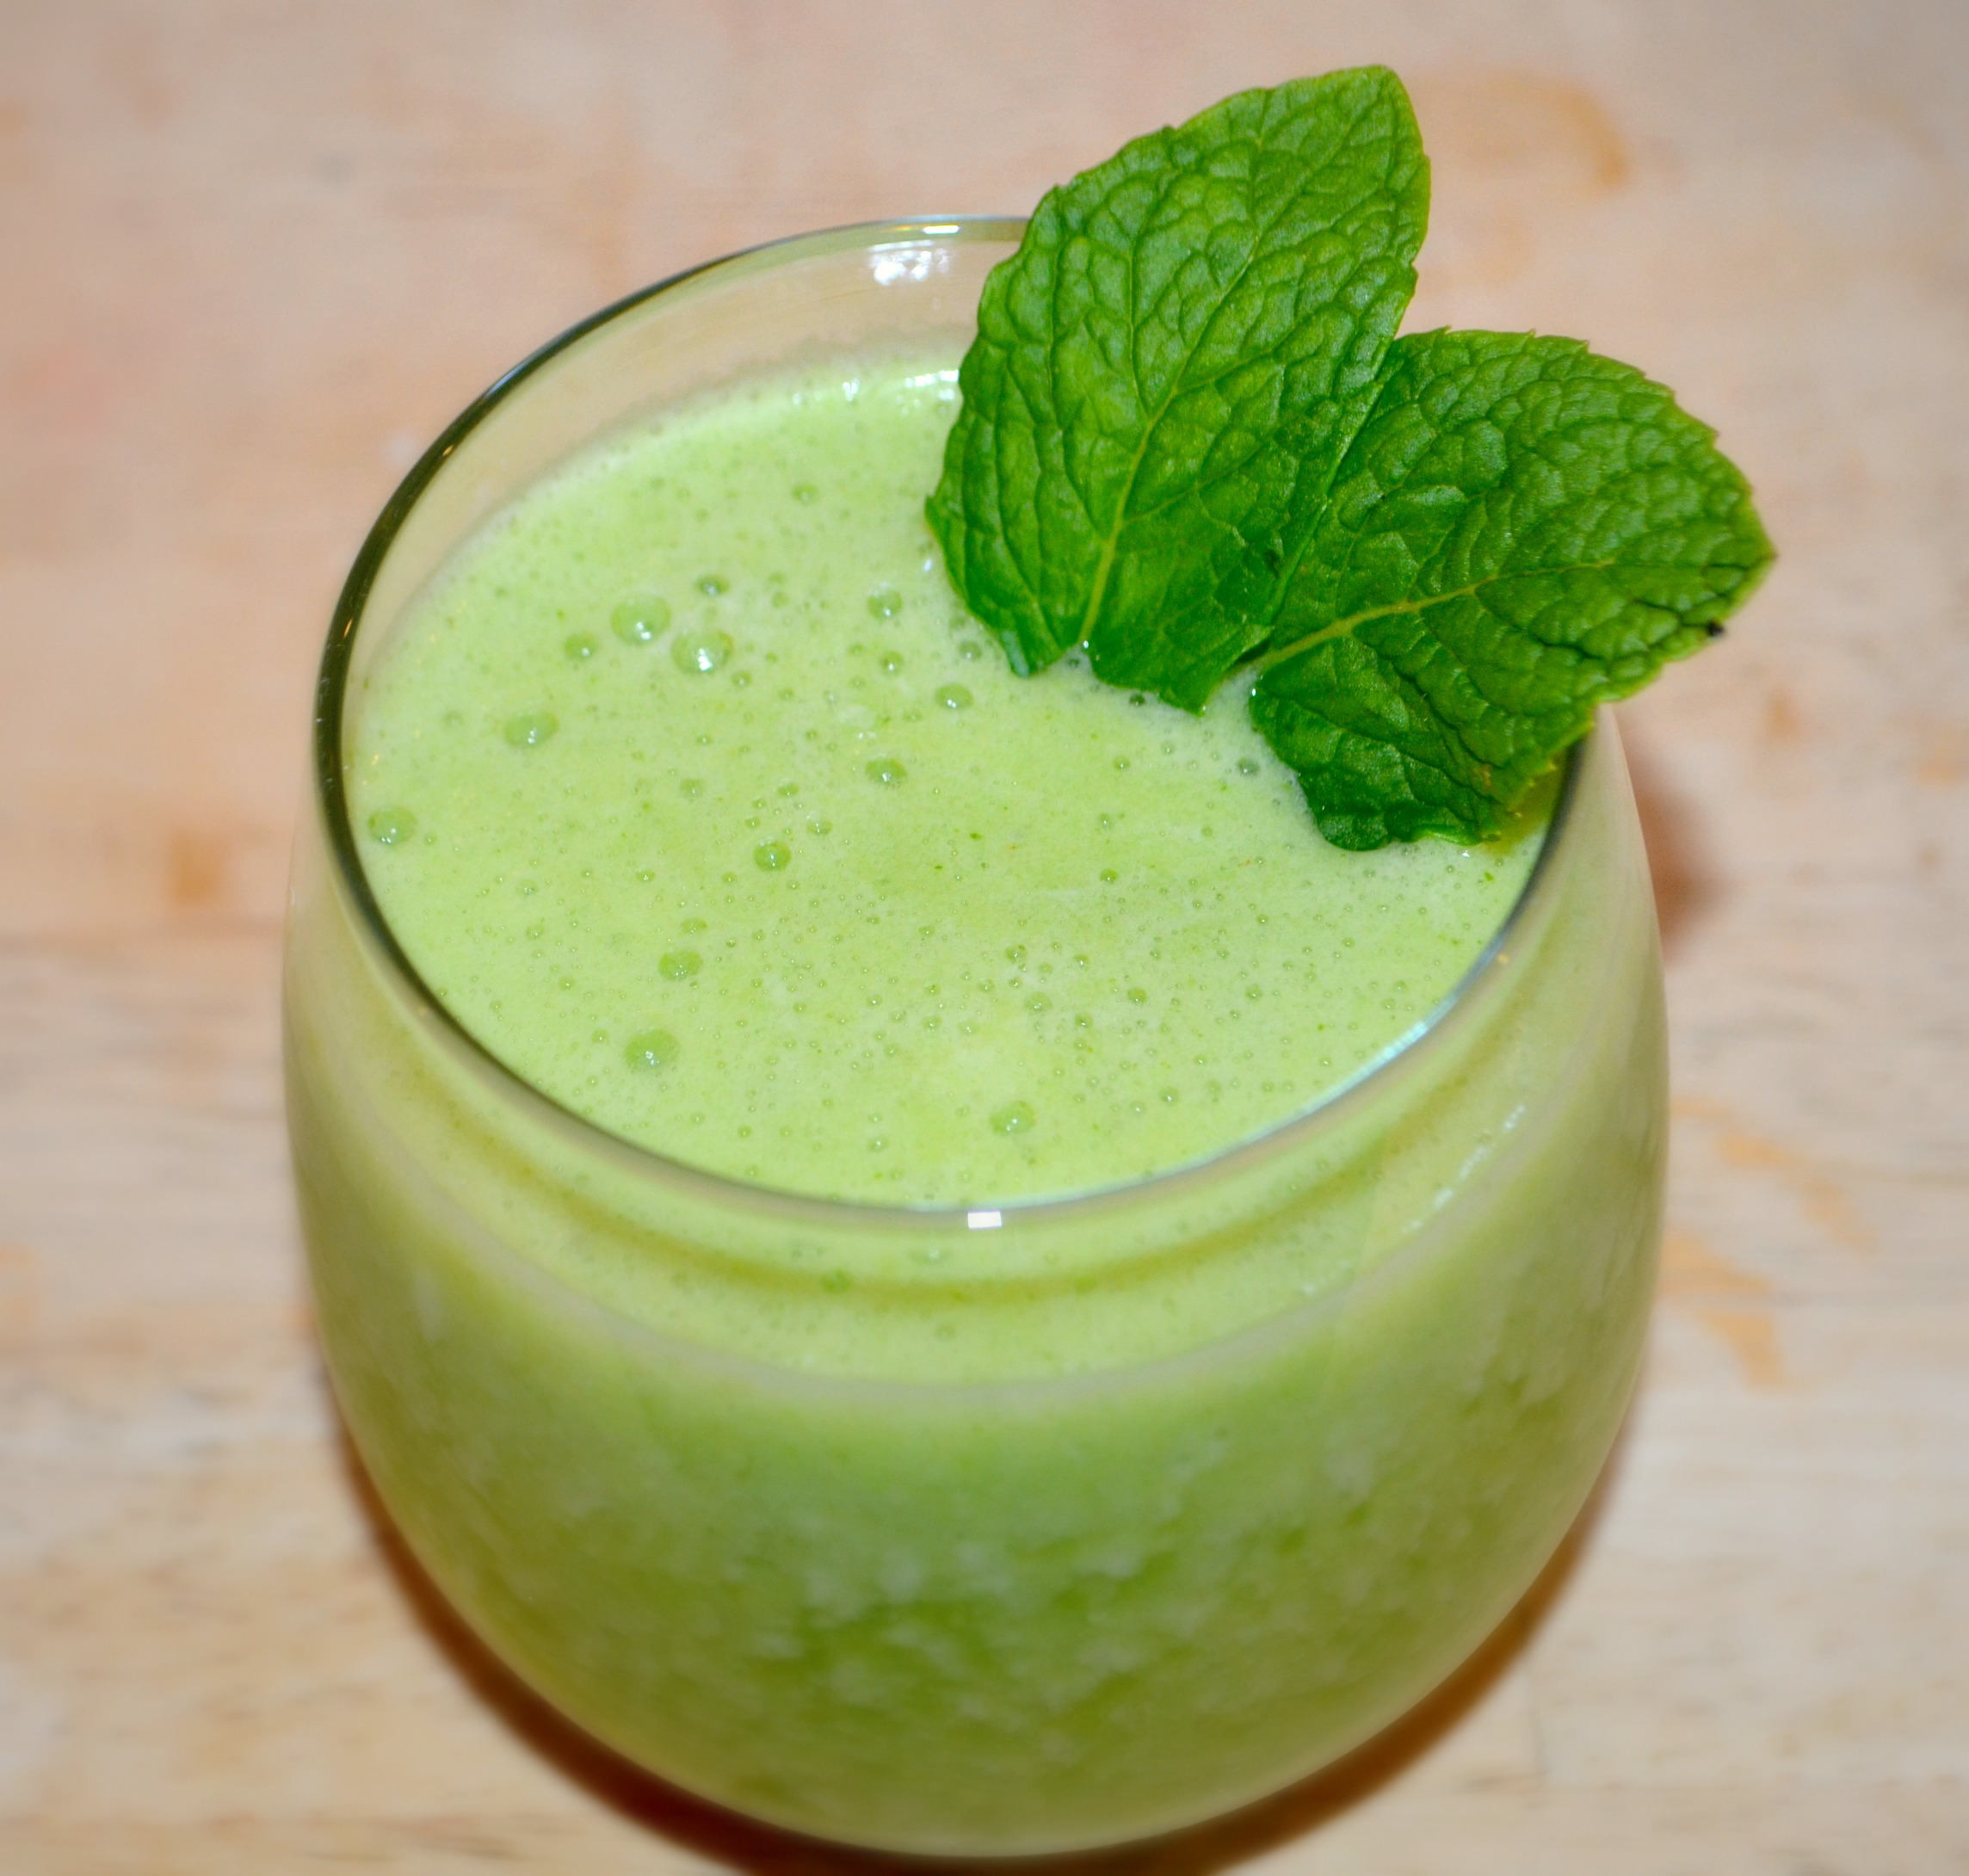 Pineapple and Mint Green Smoothie Recipe